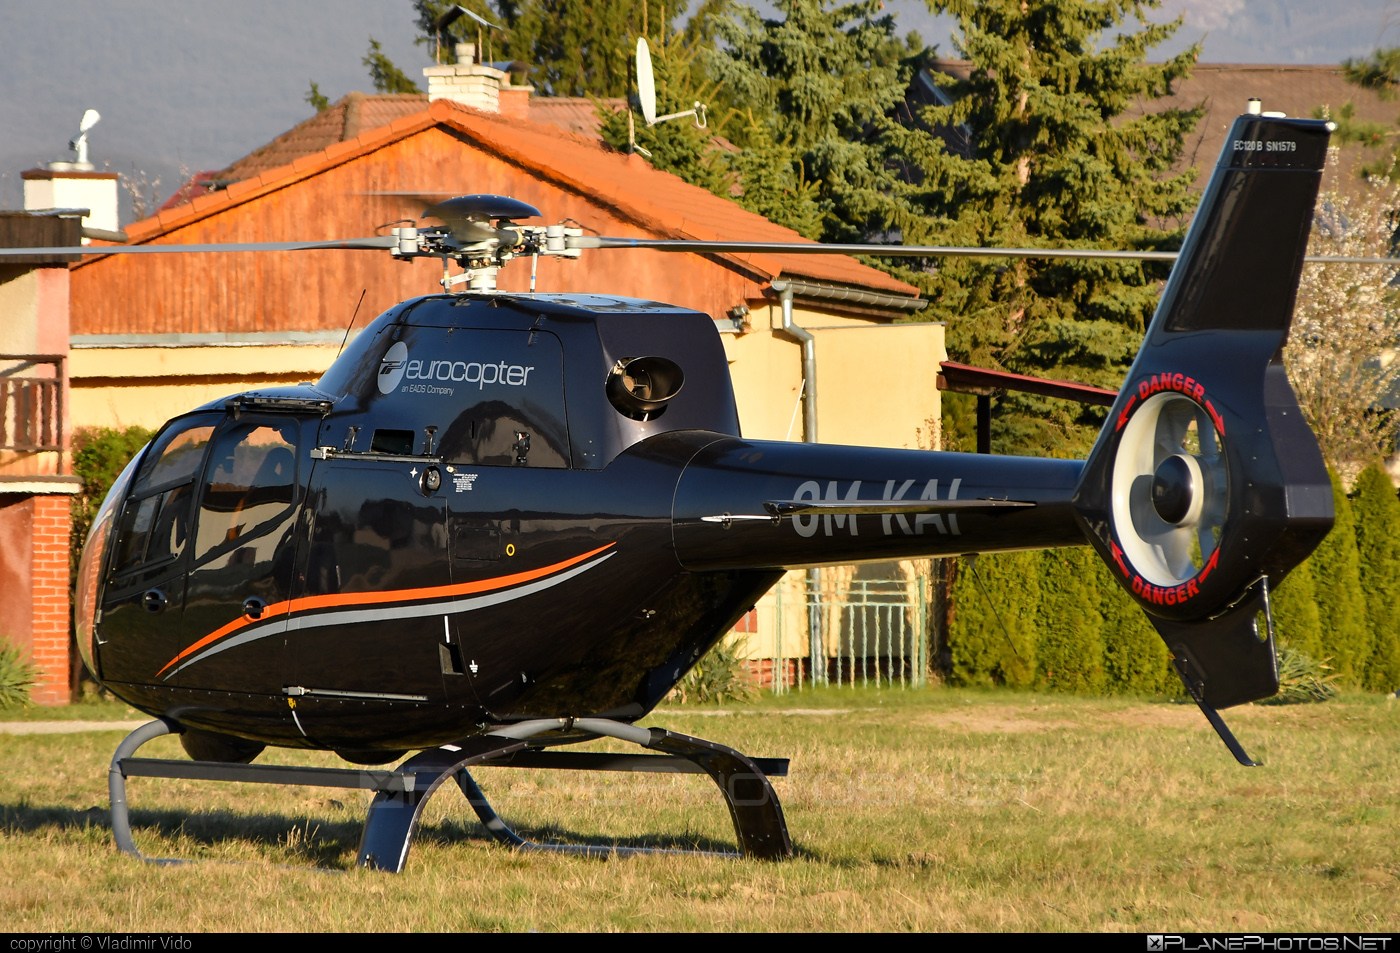 Eurocopter EC120 B Colibri - OM-KAI operated by Private operator #ec120 #ec120b #ec120bcolibri #ec120colibri #eurocopter #eurocoptercolibri #eurocopterec120colibri